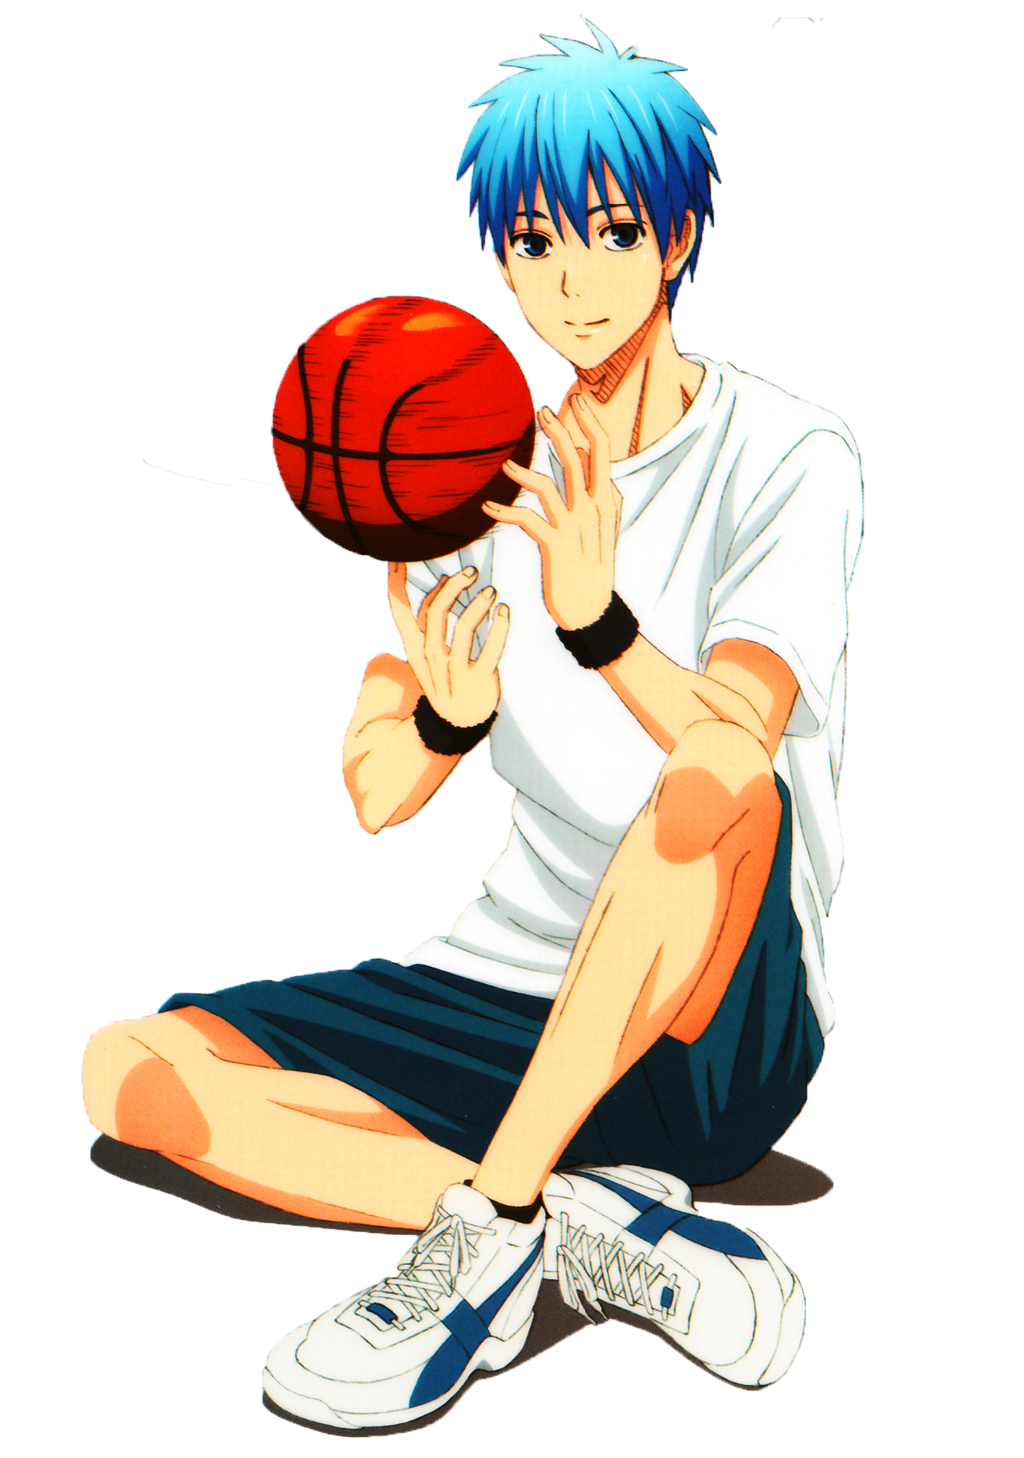 https://vignette.wikia.nocookie.net/kurokosbasket/images/5/59/Kuroko_render_2_by_janoneee-d6xiwxp.png/revision/latest?cb=20150930173903&path-prefix=fr